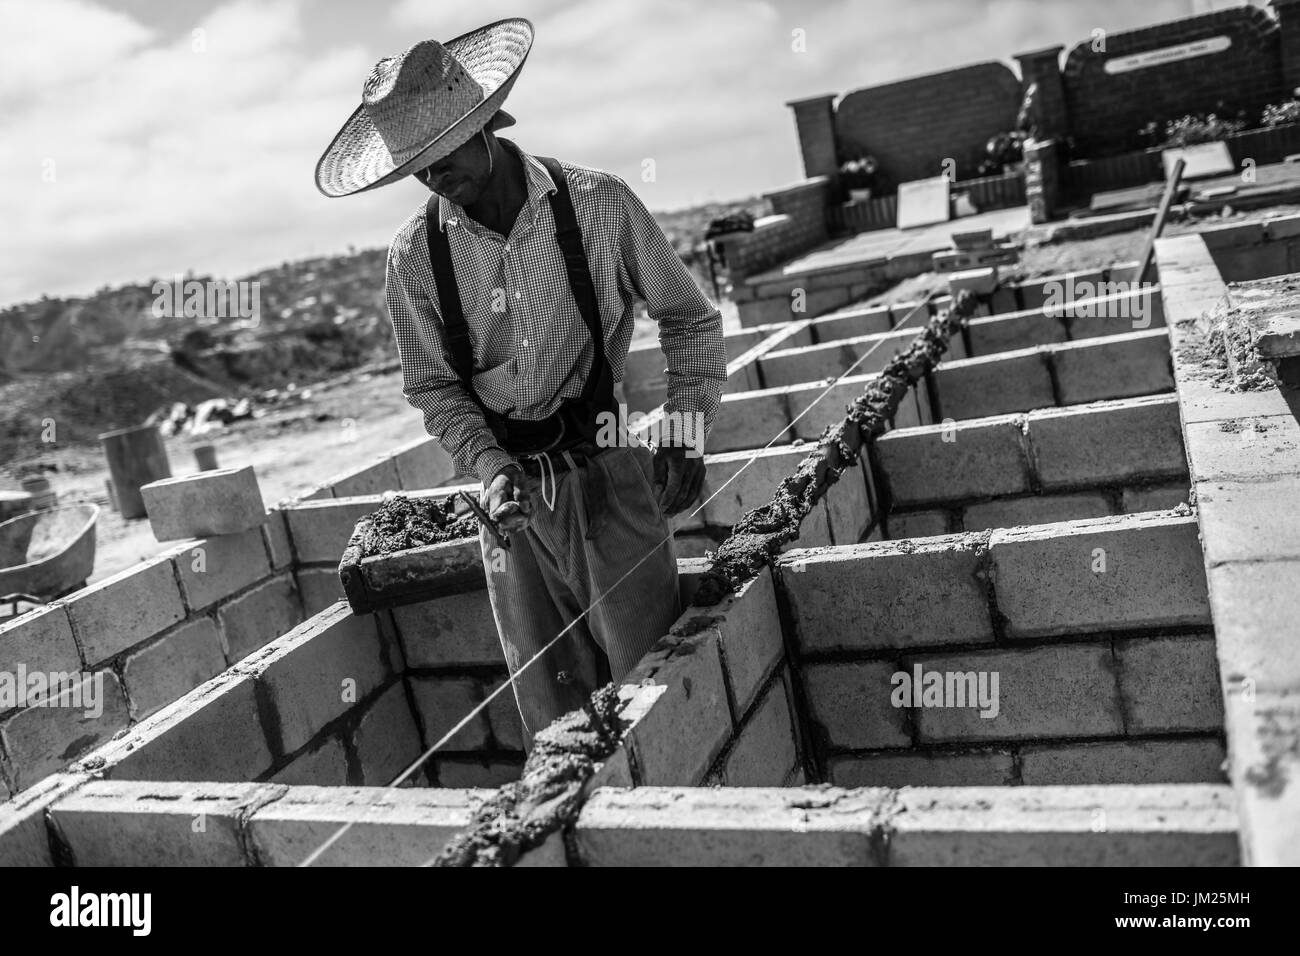 Tijuana Black and White Stock Photos   Images - Alamy 822c3304ab7